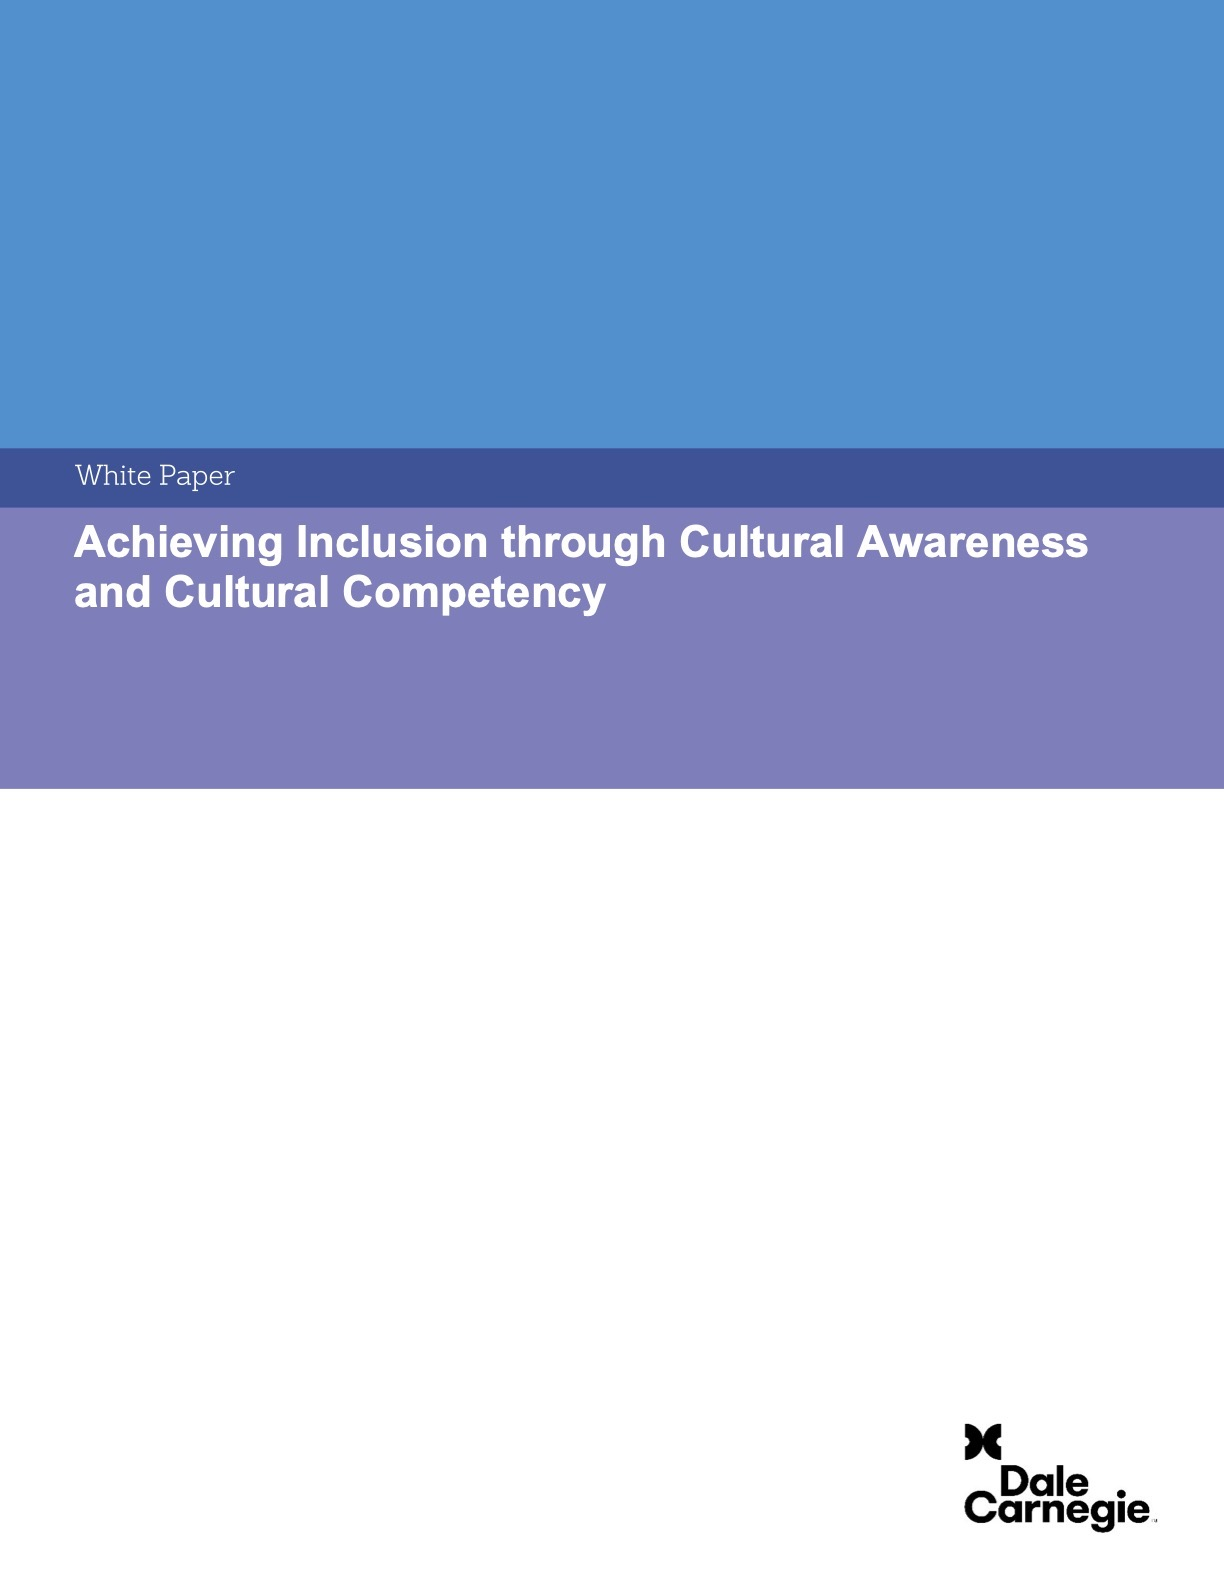 cultural awareness and cultural competency